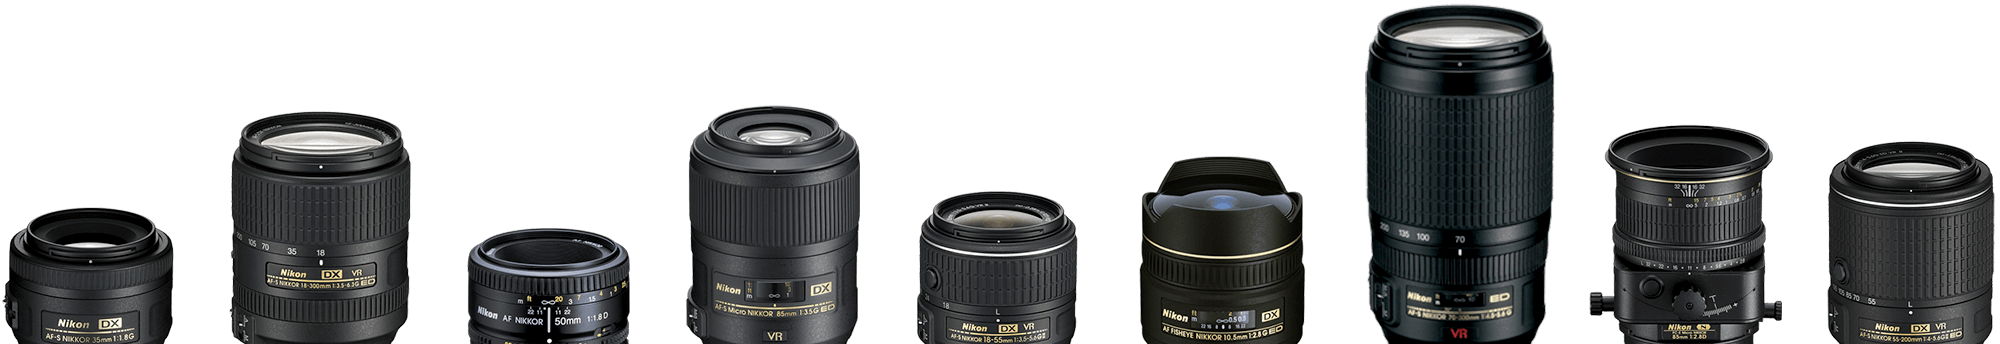 NIKKOR DSLR Camera Lenses | Nikon